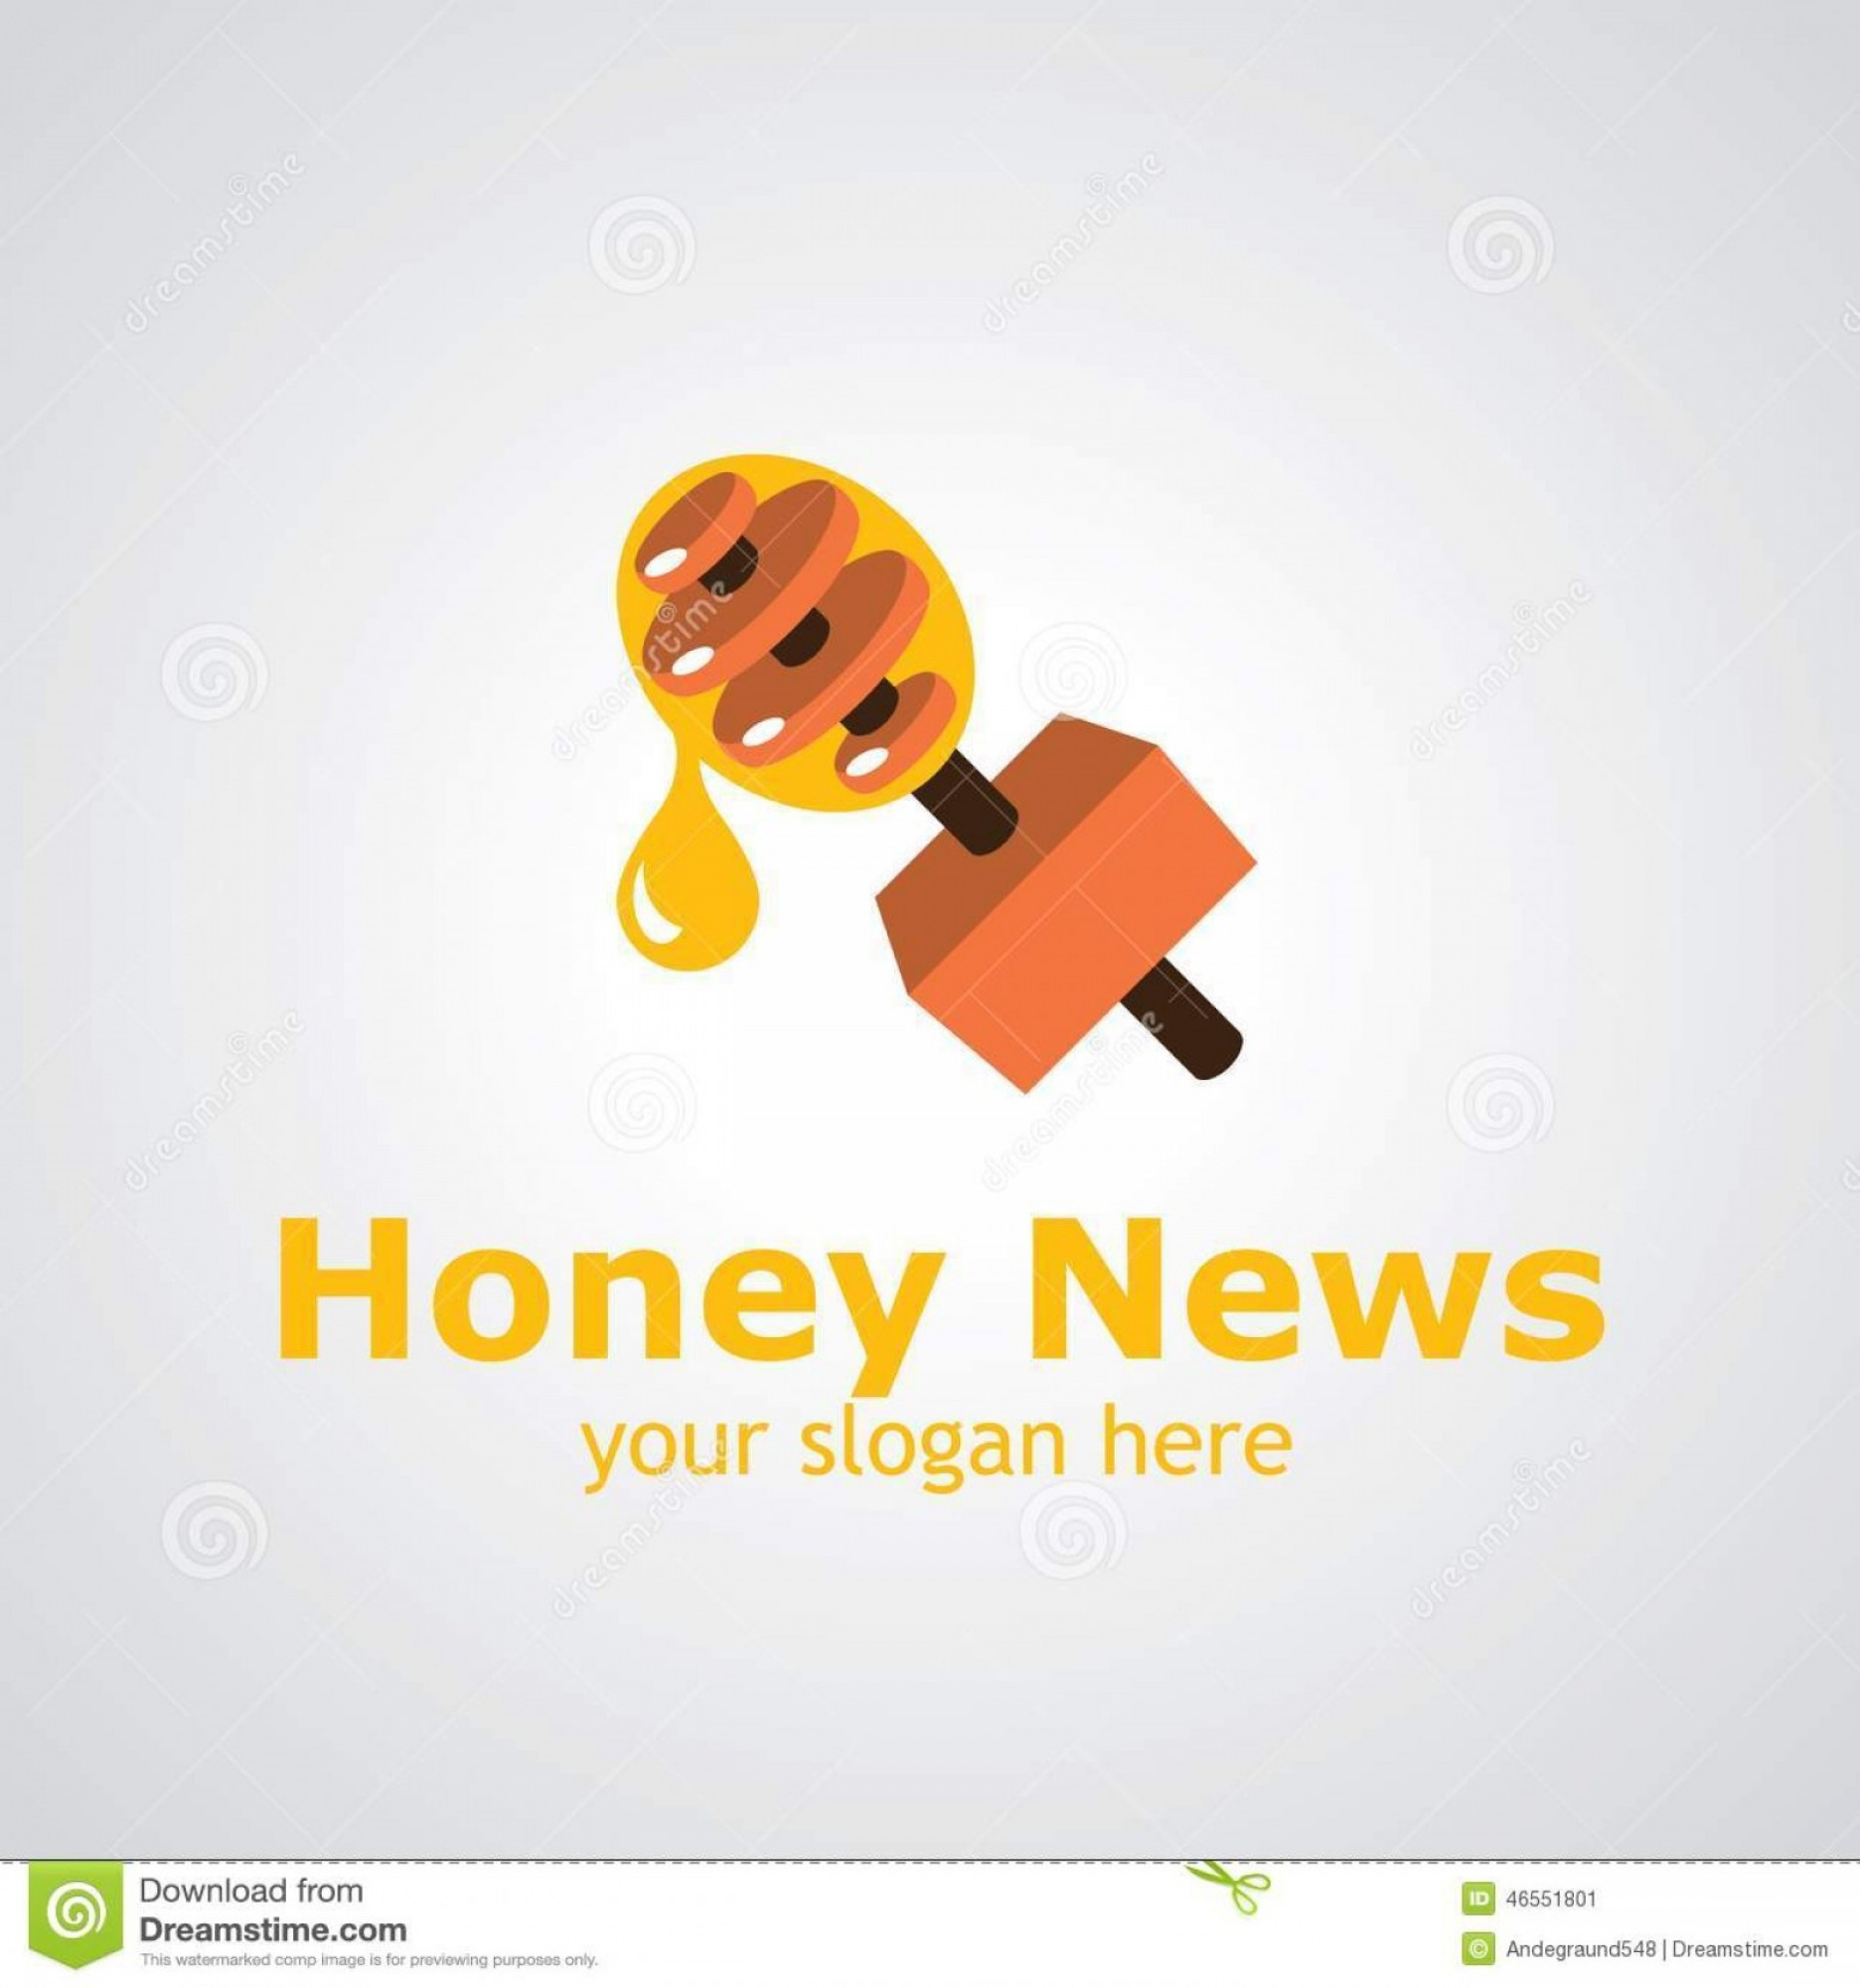 News Microphone Icon Vector: Stock Illustration Honey News Vector Logo Design Reporter Microphone As Stick Icon Idea Brand Image